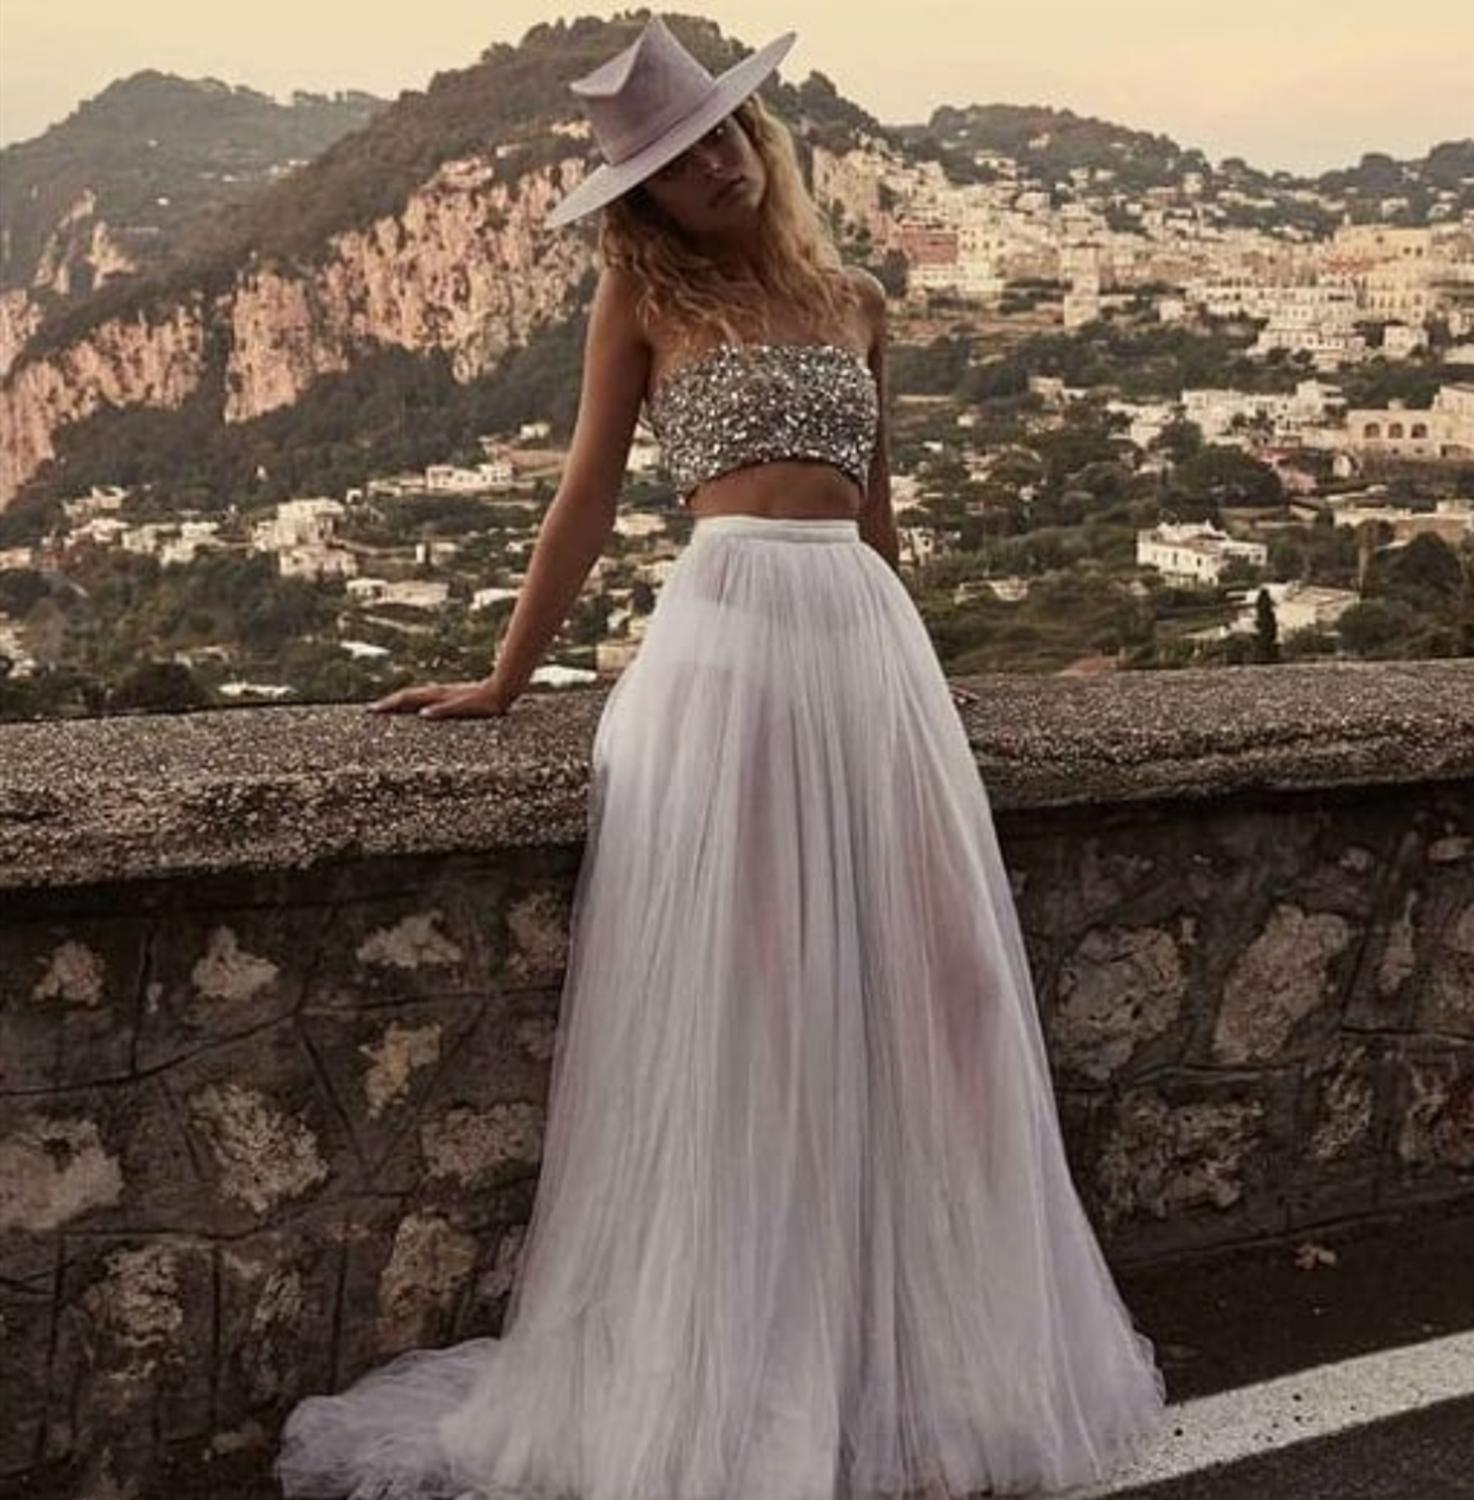 2020 Wedding Dress Boho Rustic Simple Vintage Wedding Dress Sexy Wedding Dress Boho Long Backless White Beach Two Pieces 2